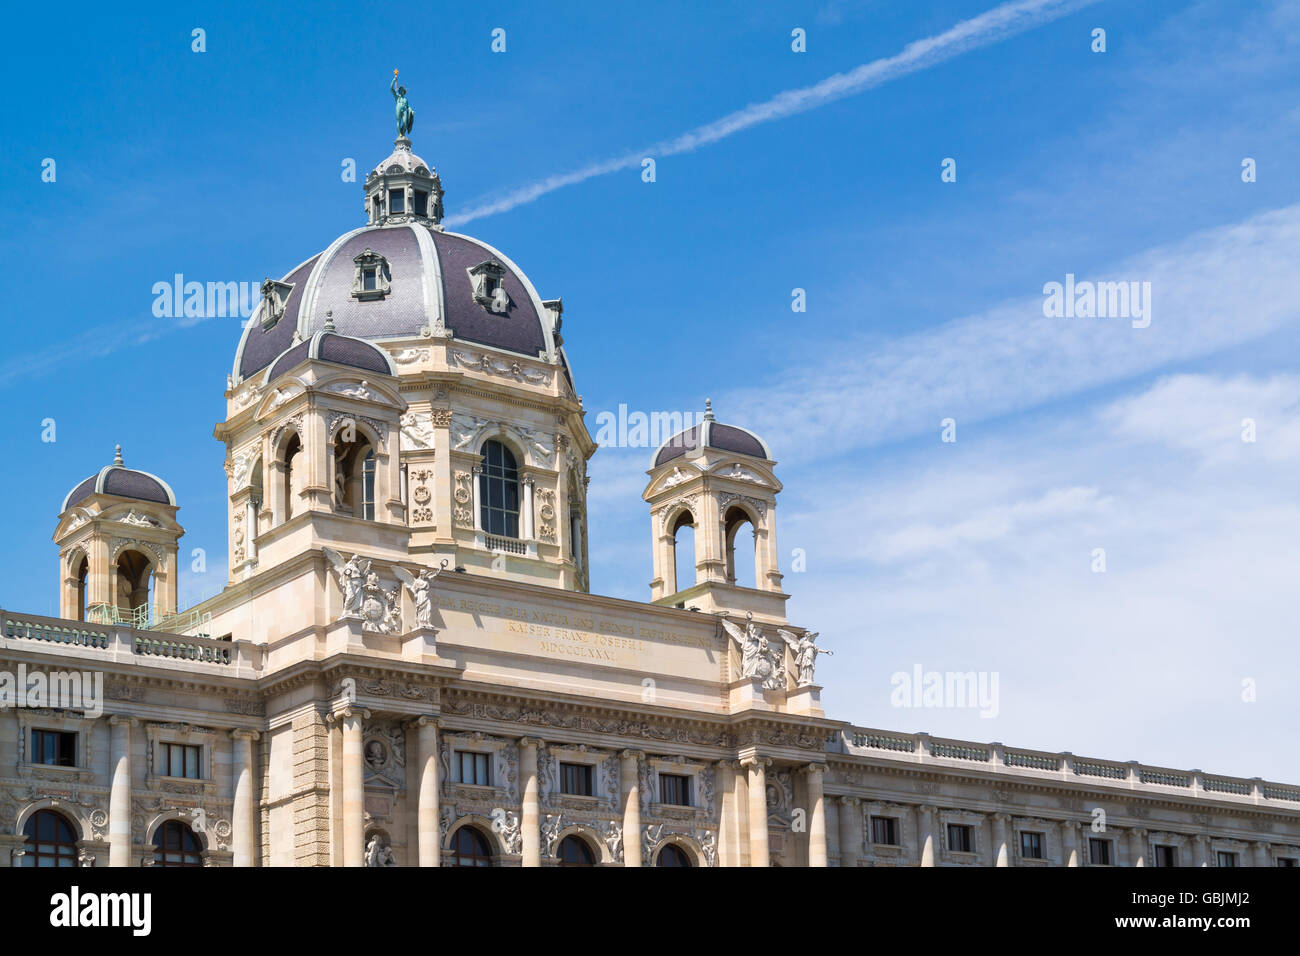 Top of facade of Imperial Natural History Museum on Marie Theresien Platz near Ringstrasse in Vienna, Austria - Stock Image